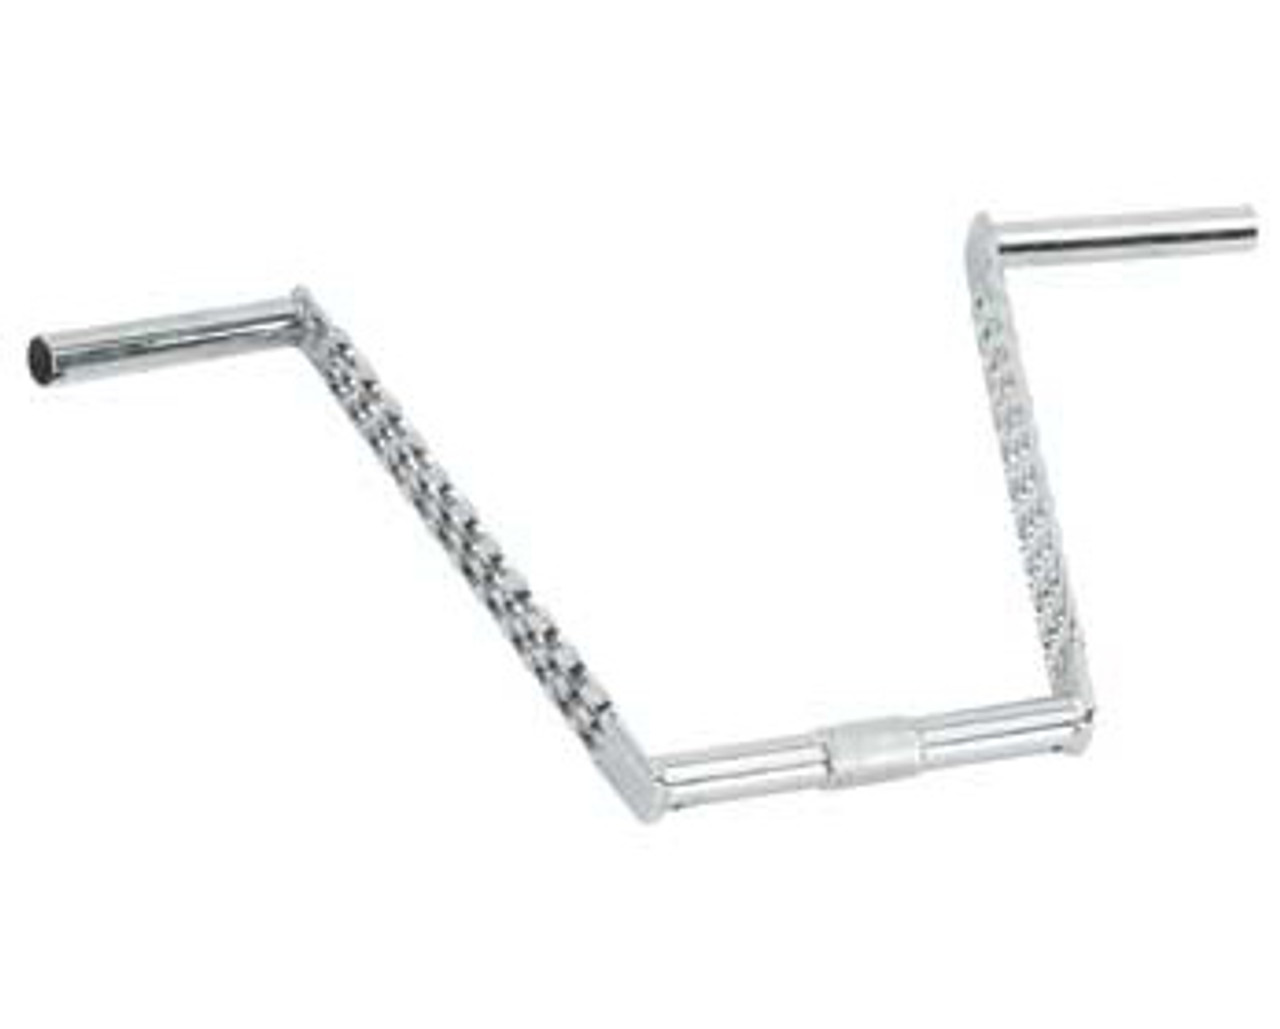 """Double Twisted Lowrider vélo guidon 12/"""" 25.4 mm Chrome 169-541 Original"""